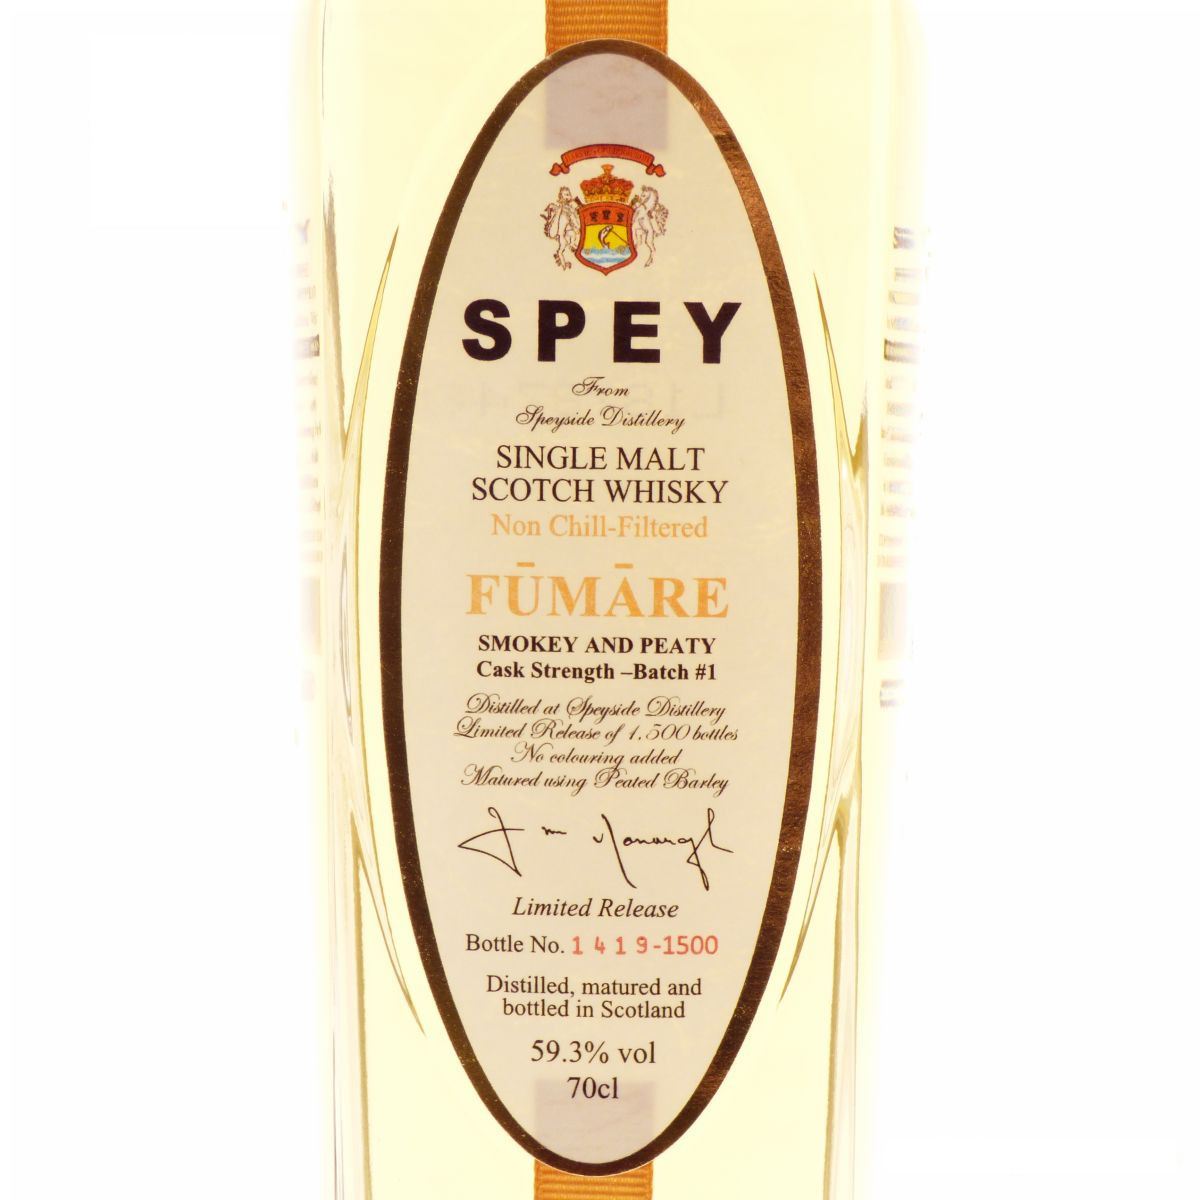 Speyside Spey Fumare Cask Strenght 70cl